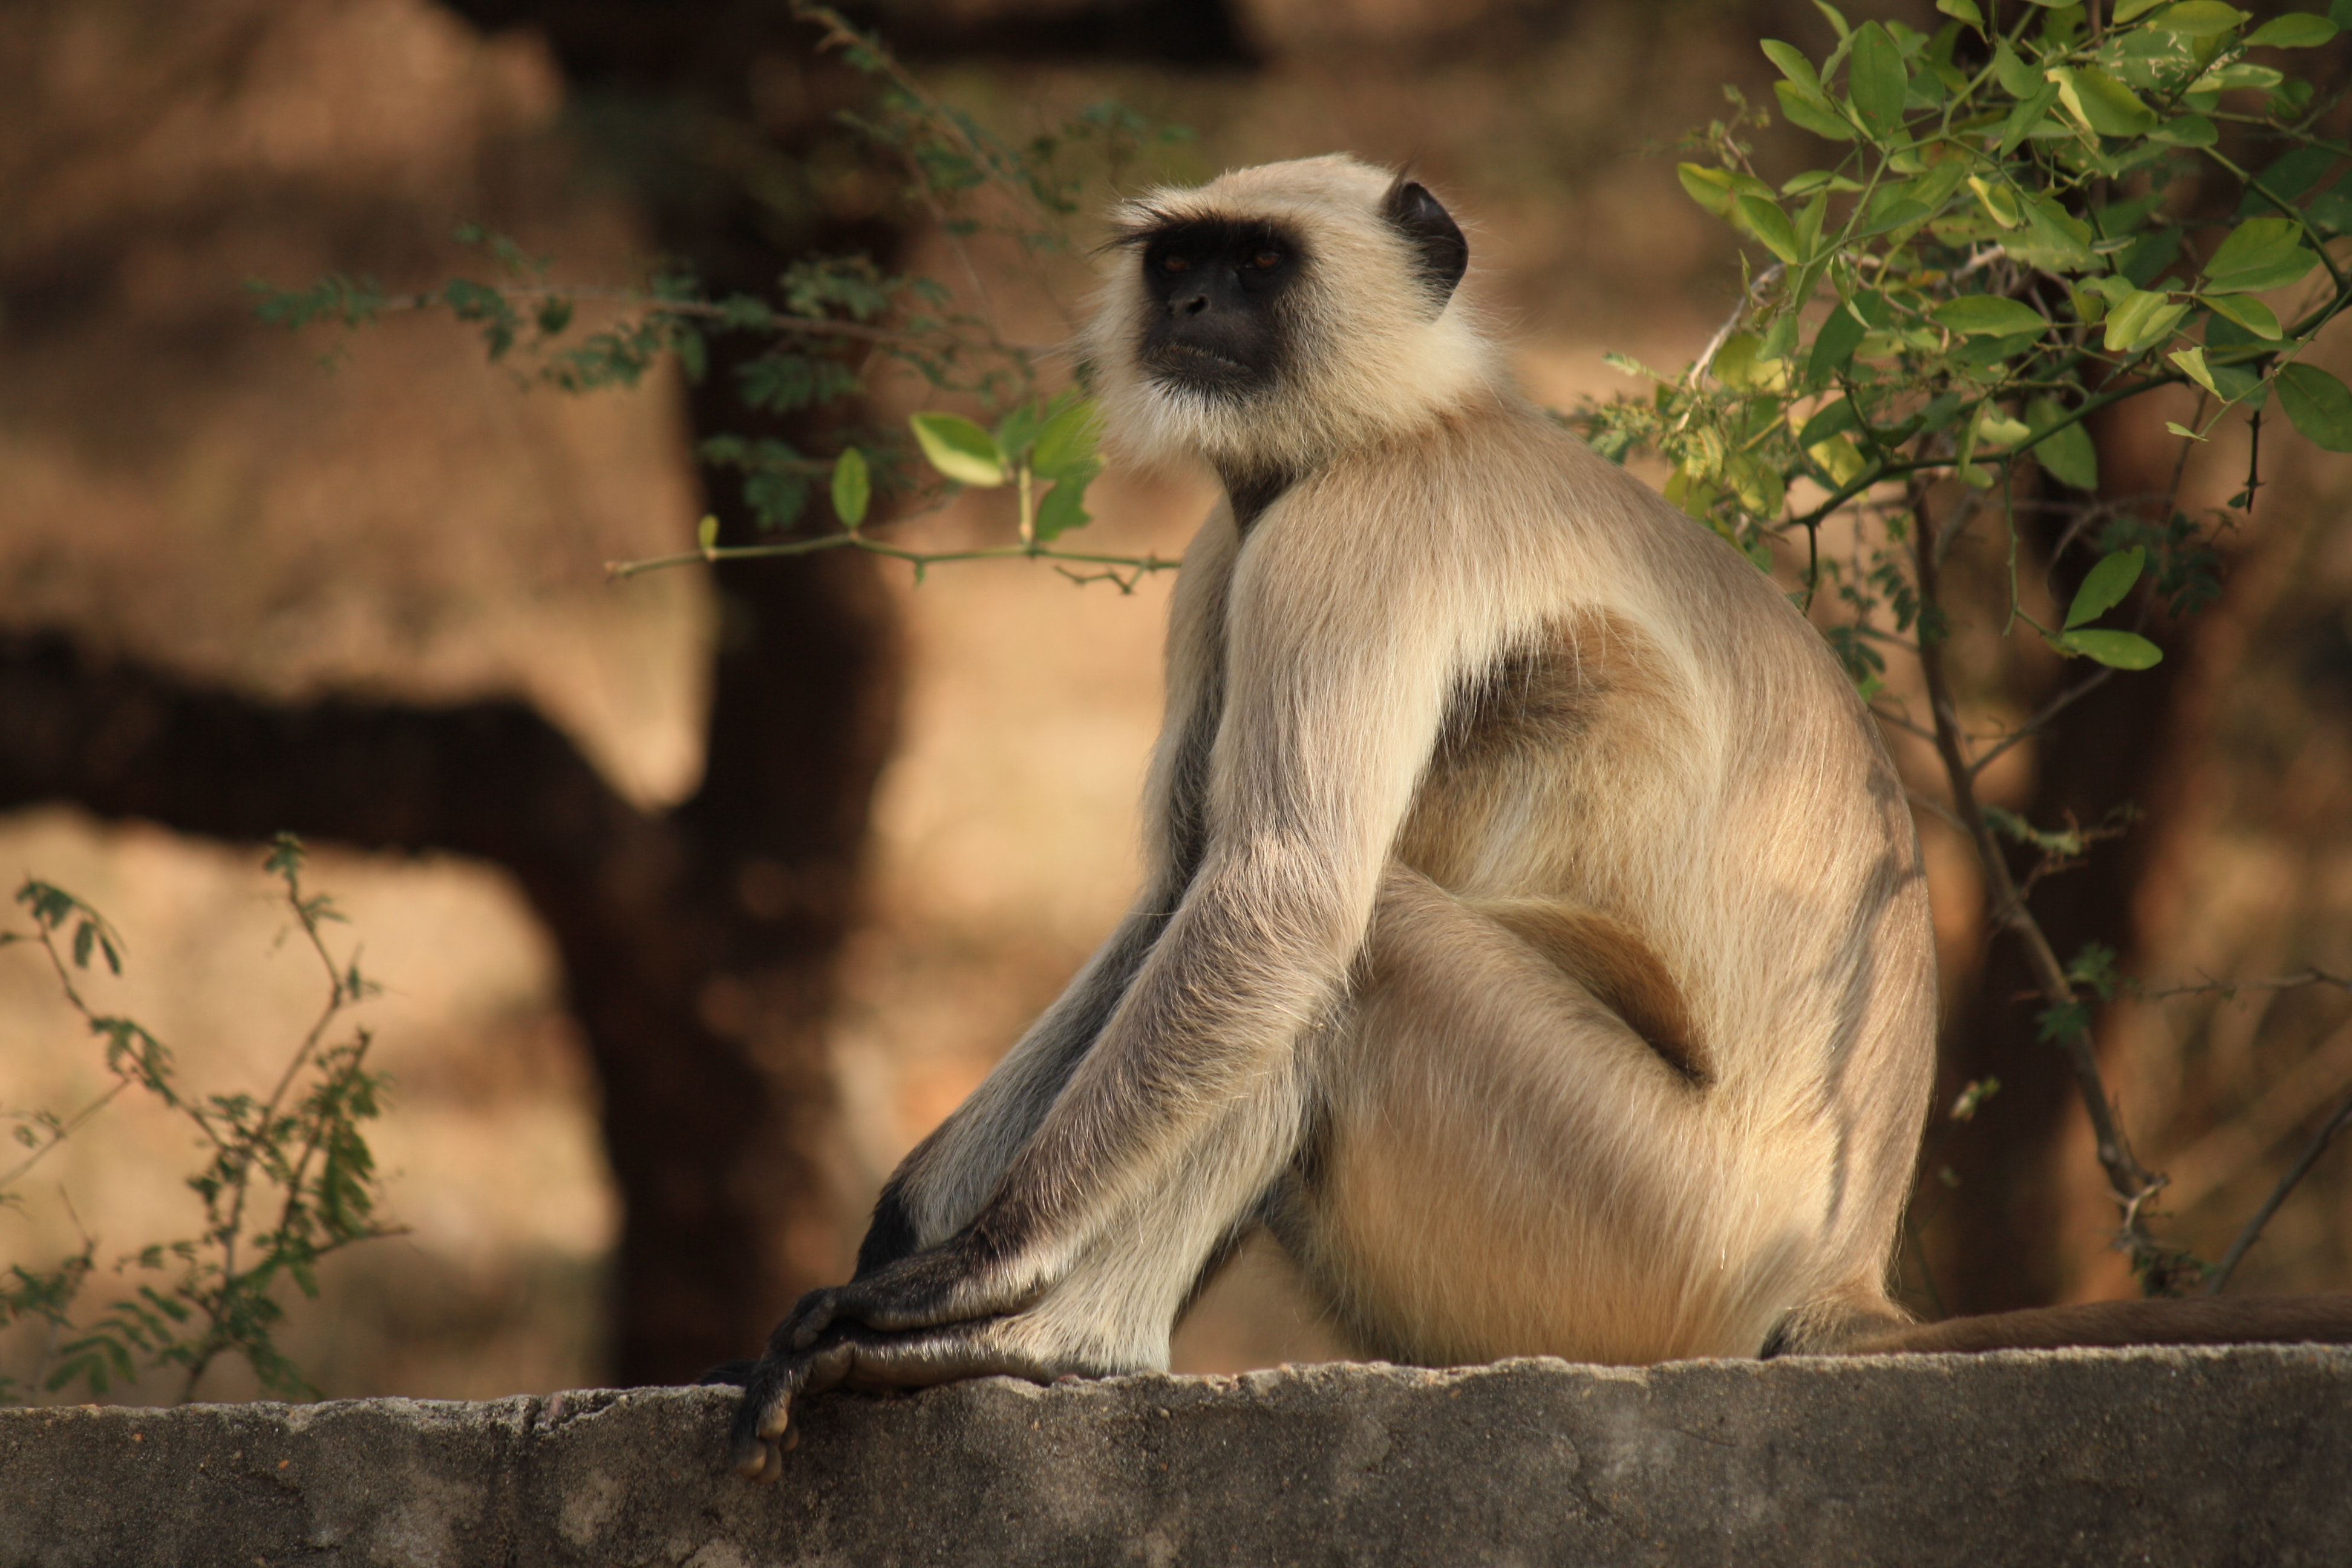 Depth of Field of Gray Langur Sitting on Gray Concrete Surface Near Green Leaf Plant, Animal, Outdoors, Wildlife, Wild, HQ Photo